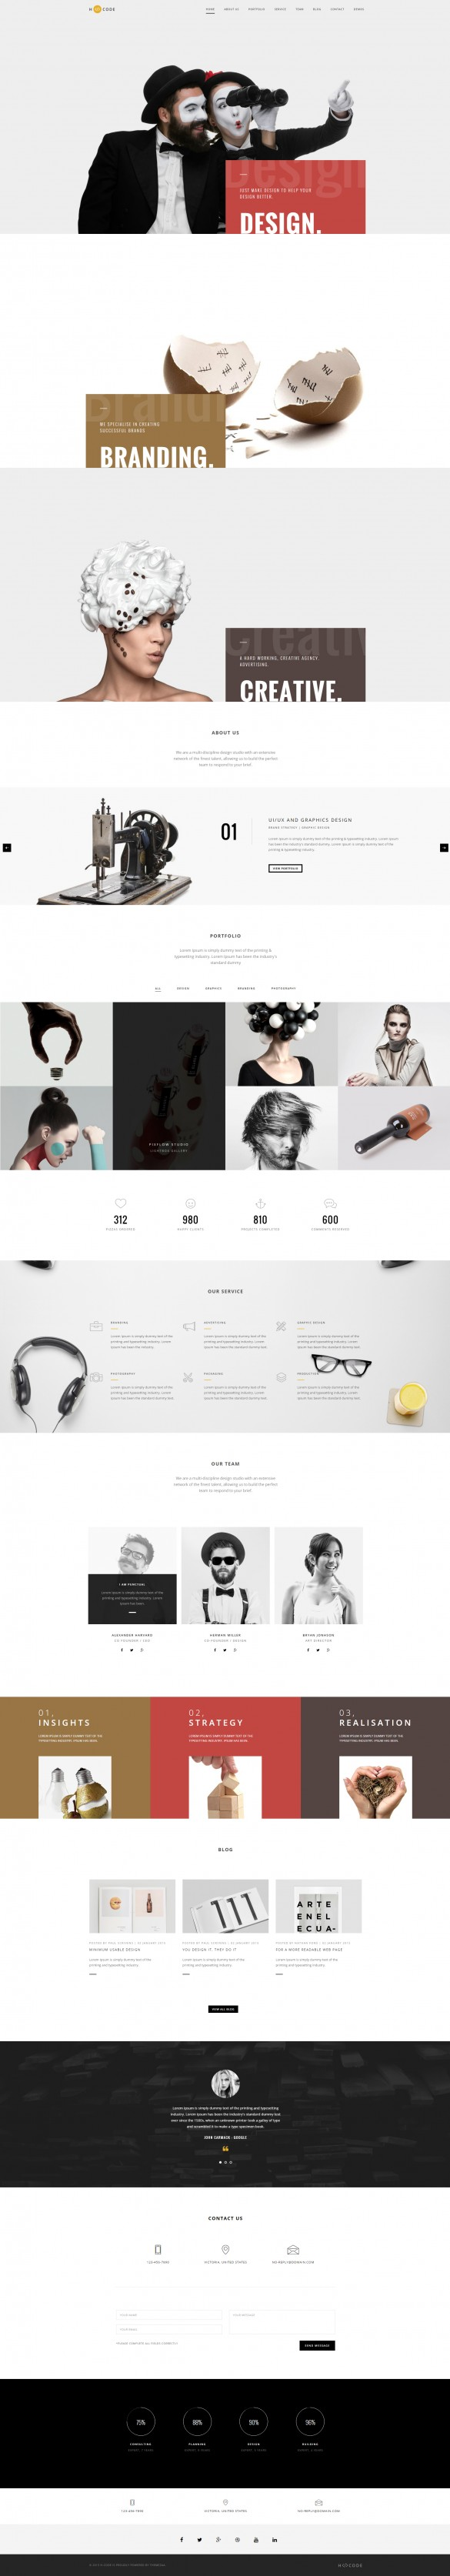 onepage-agency